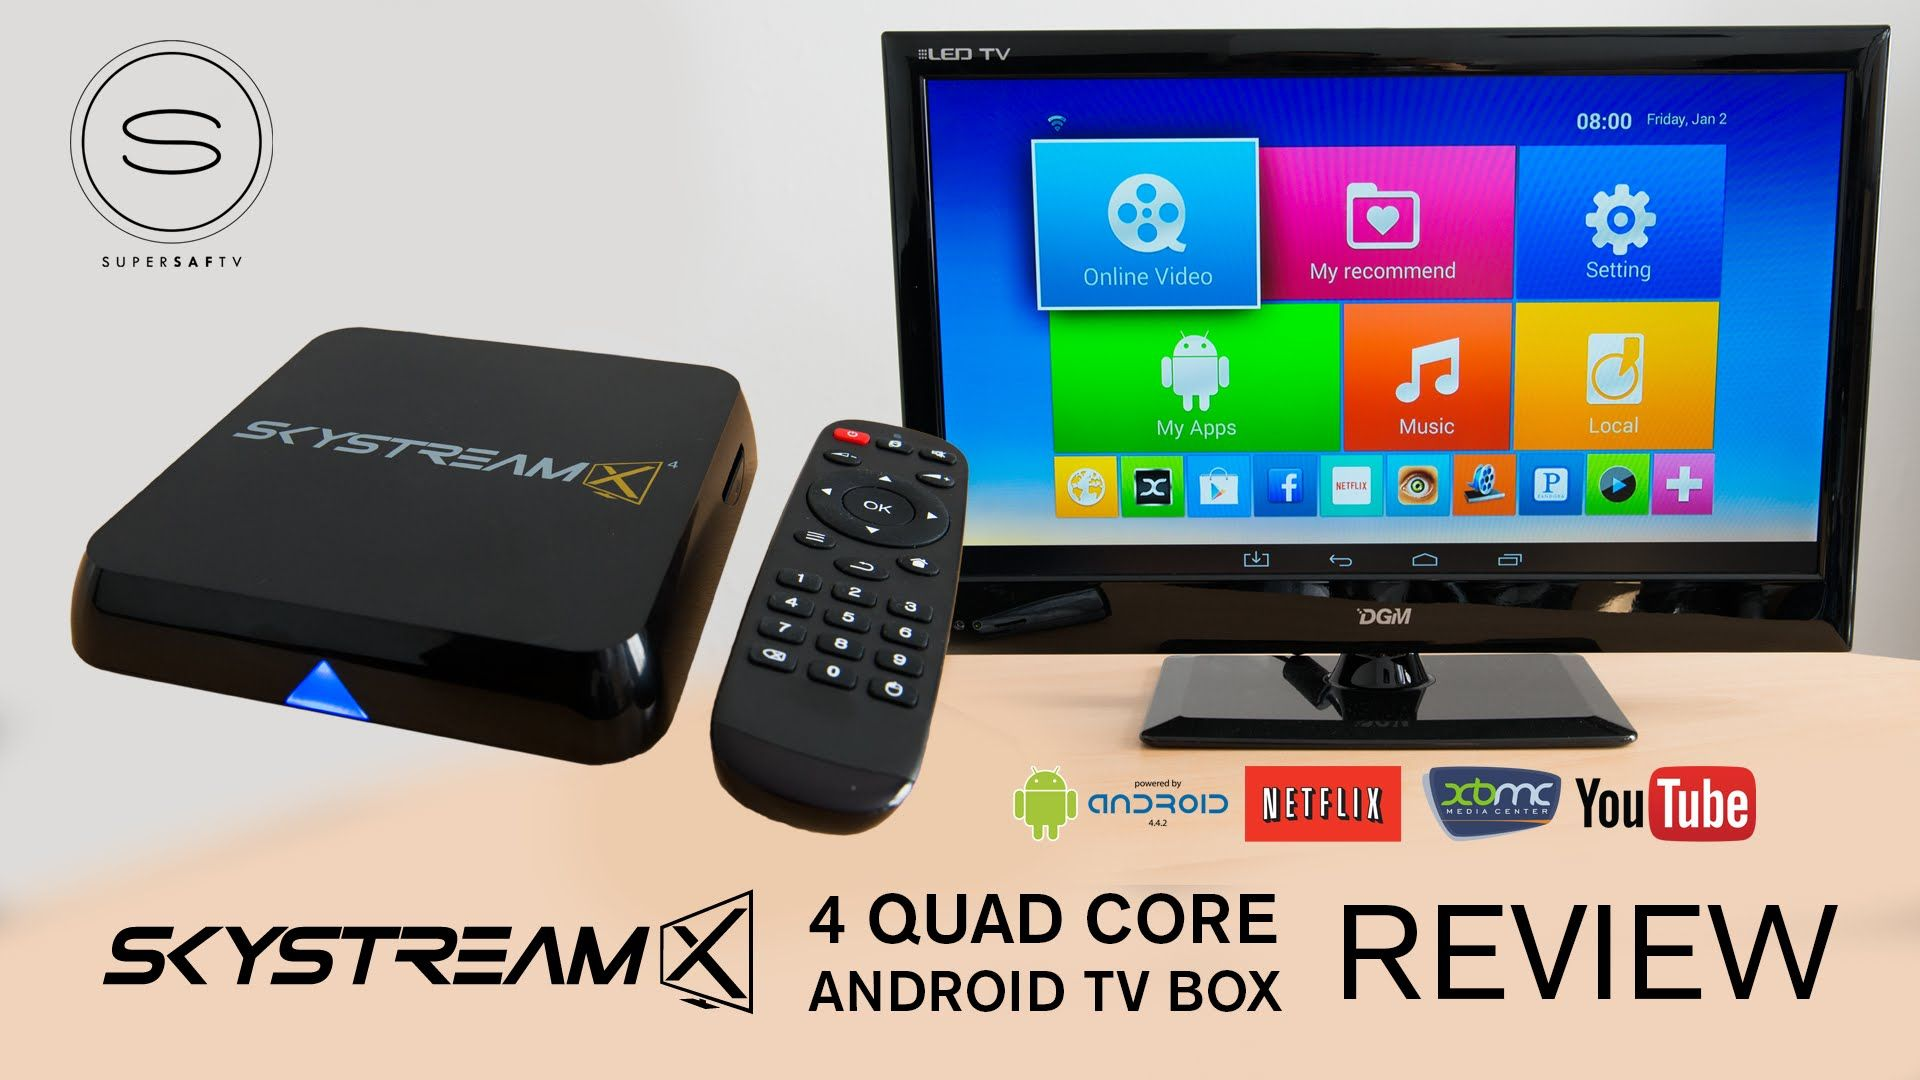 Skystreamx 4 Quad Core Android Tv Box Review Xbmc Android Tv